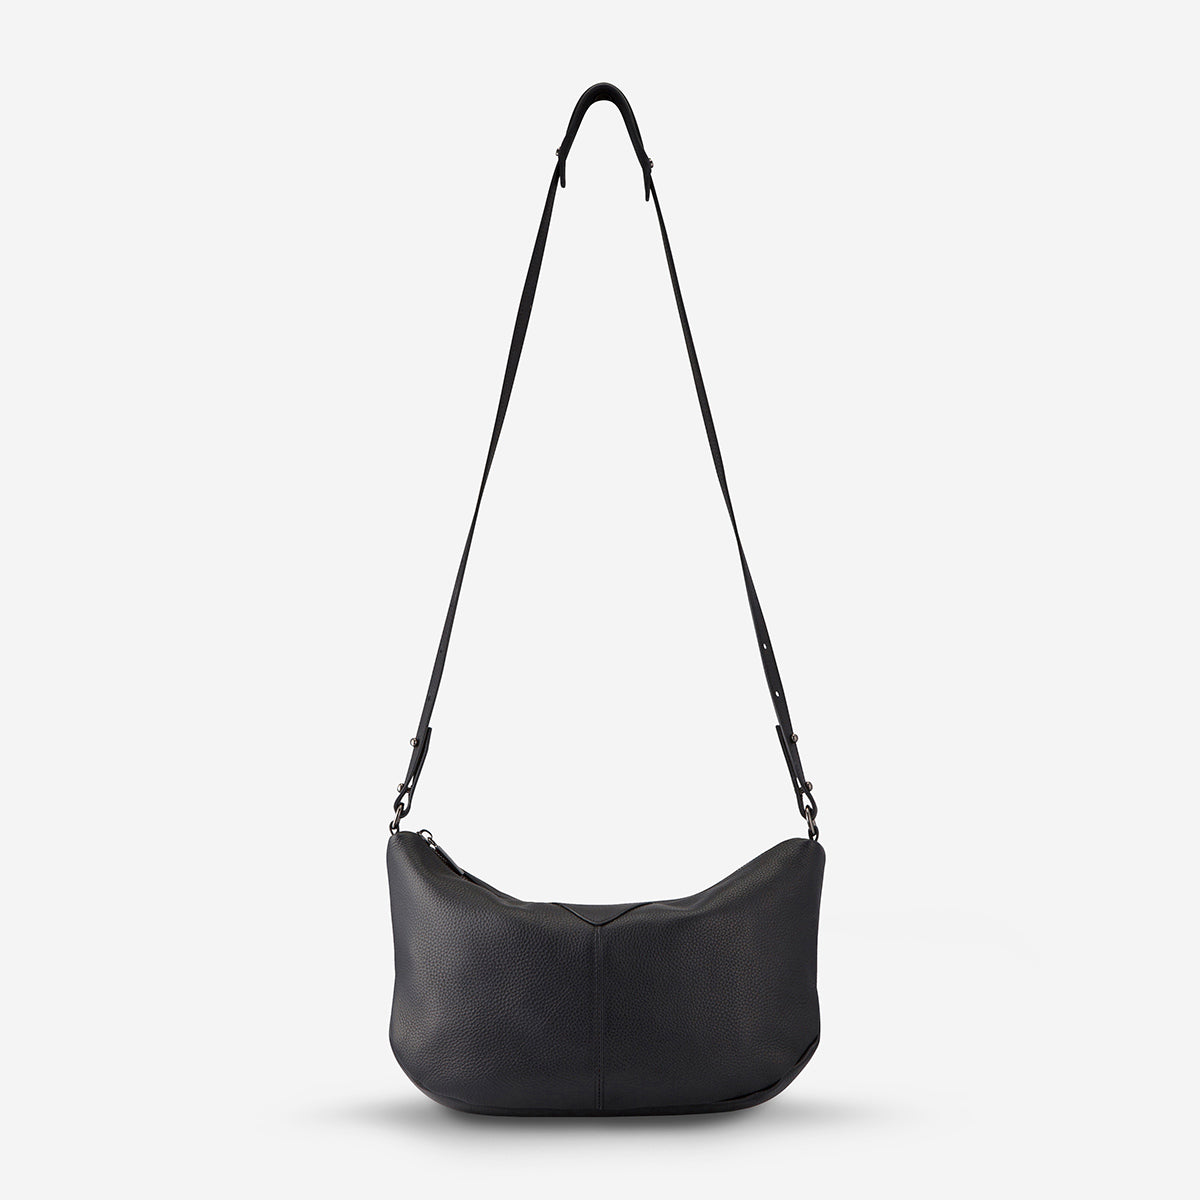 Status Anxiety At A Loss Women's Leather Crossbody Slouch Bag - Black - Inside